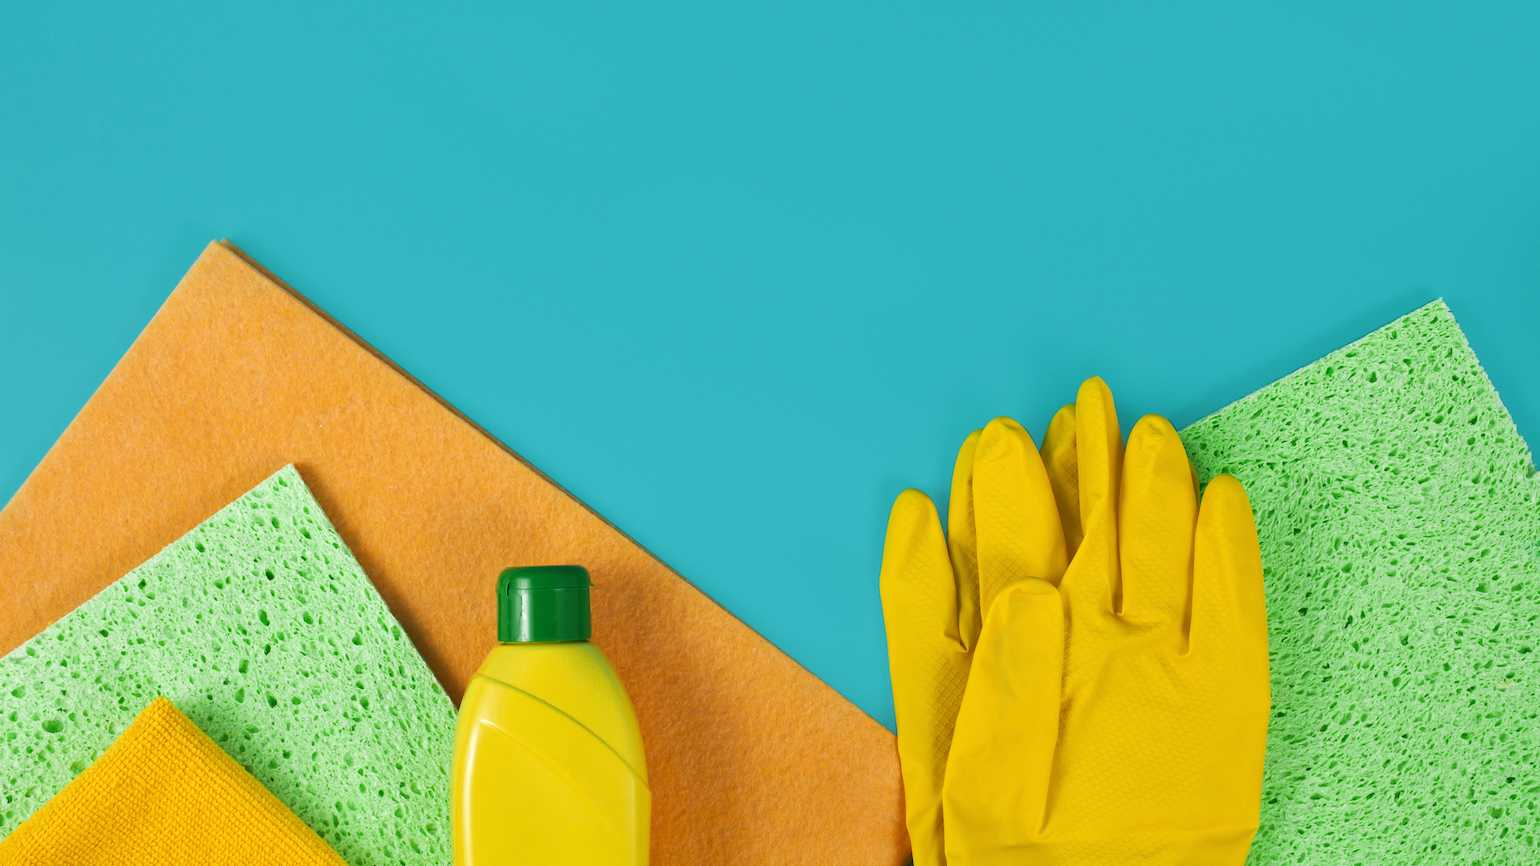 Spring cleaning for Earth Day